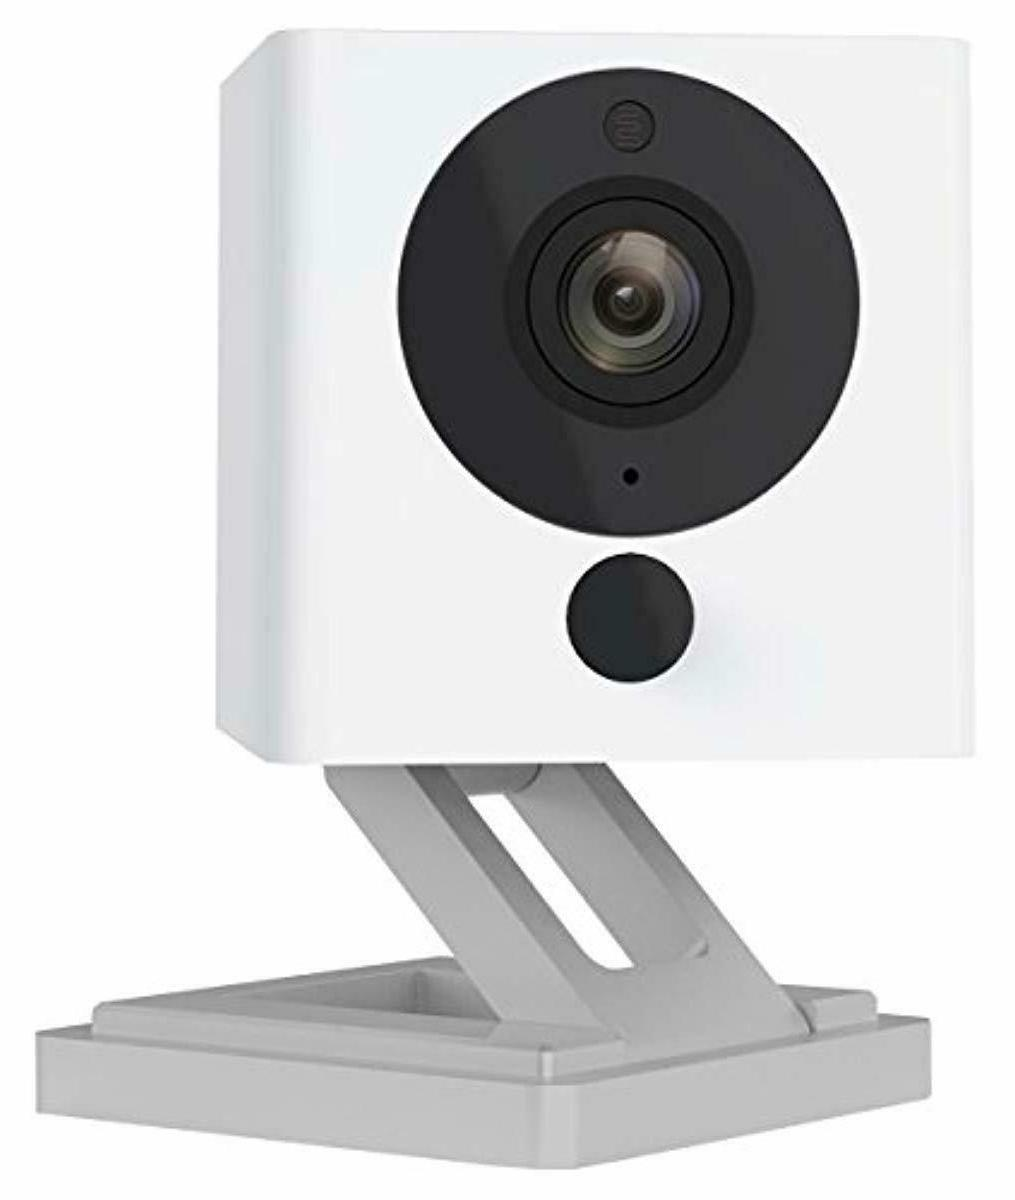 1080p HD Indoor Wireless Smart Home Camera Night Vision 2Way